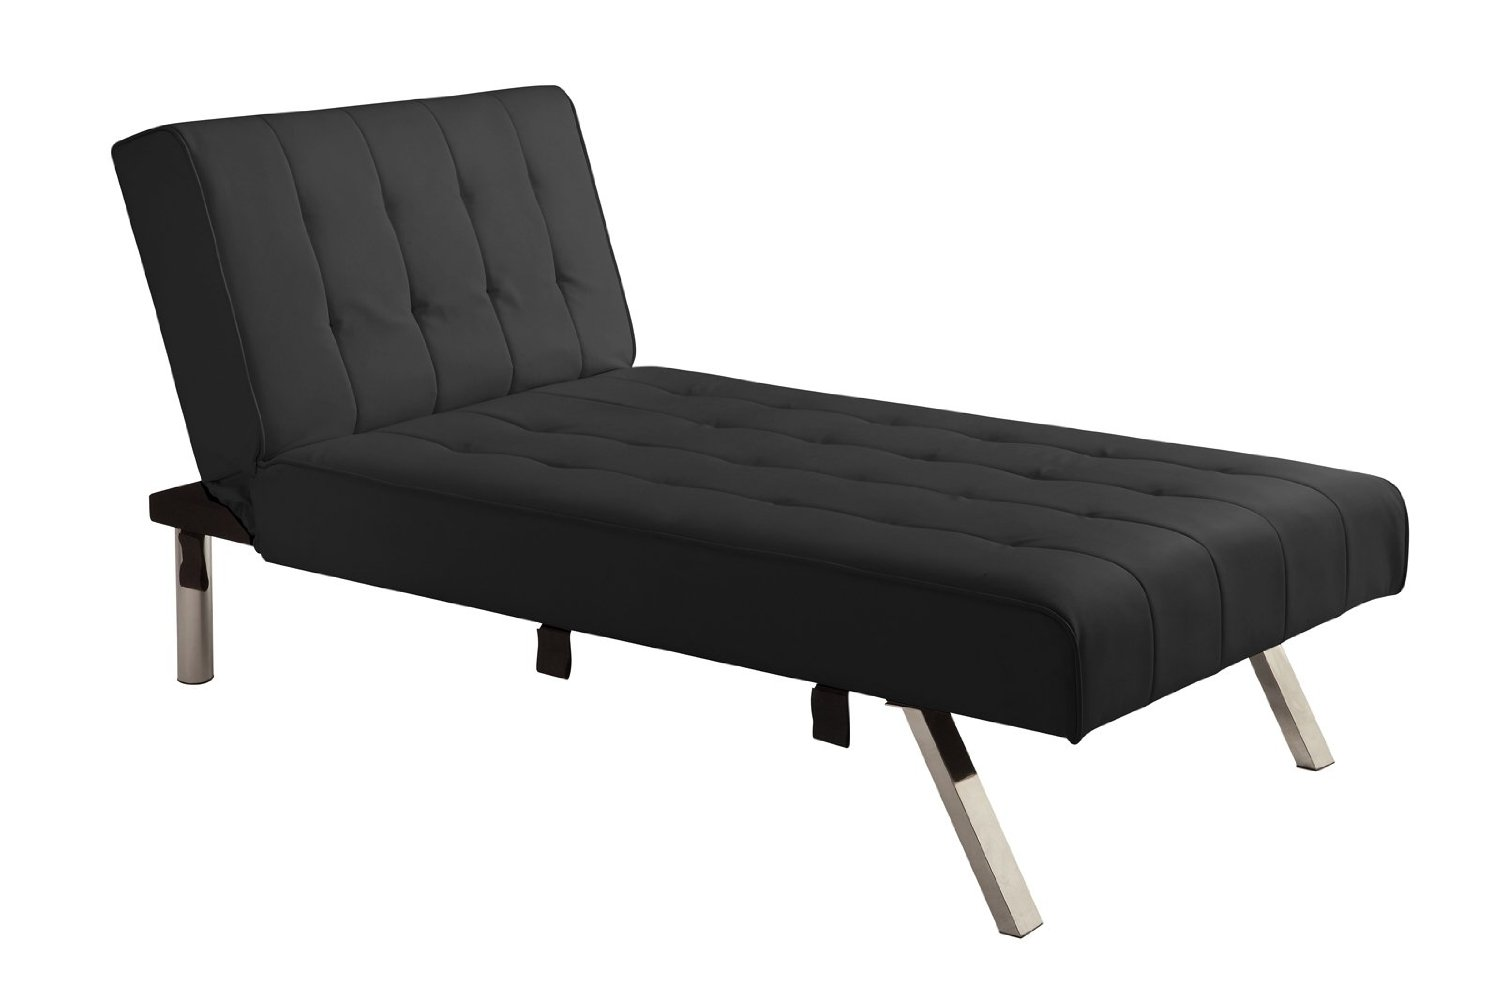 DHP Emily Chaise Lounger, Black